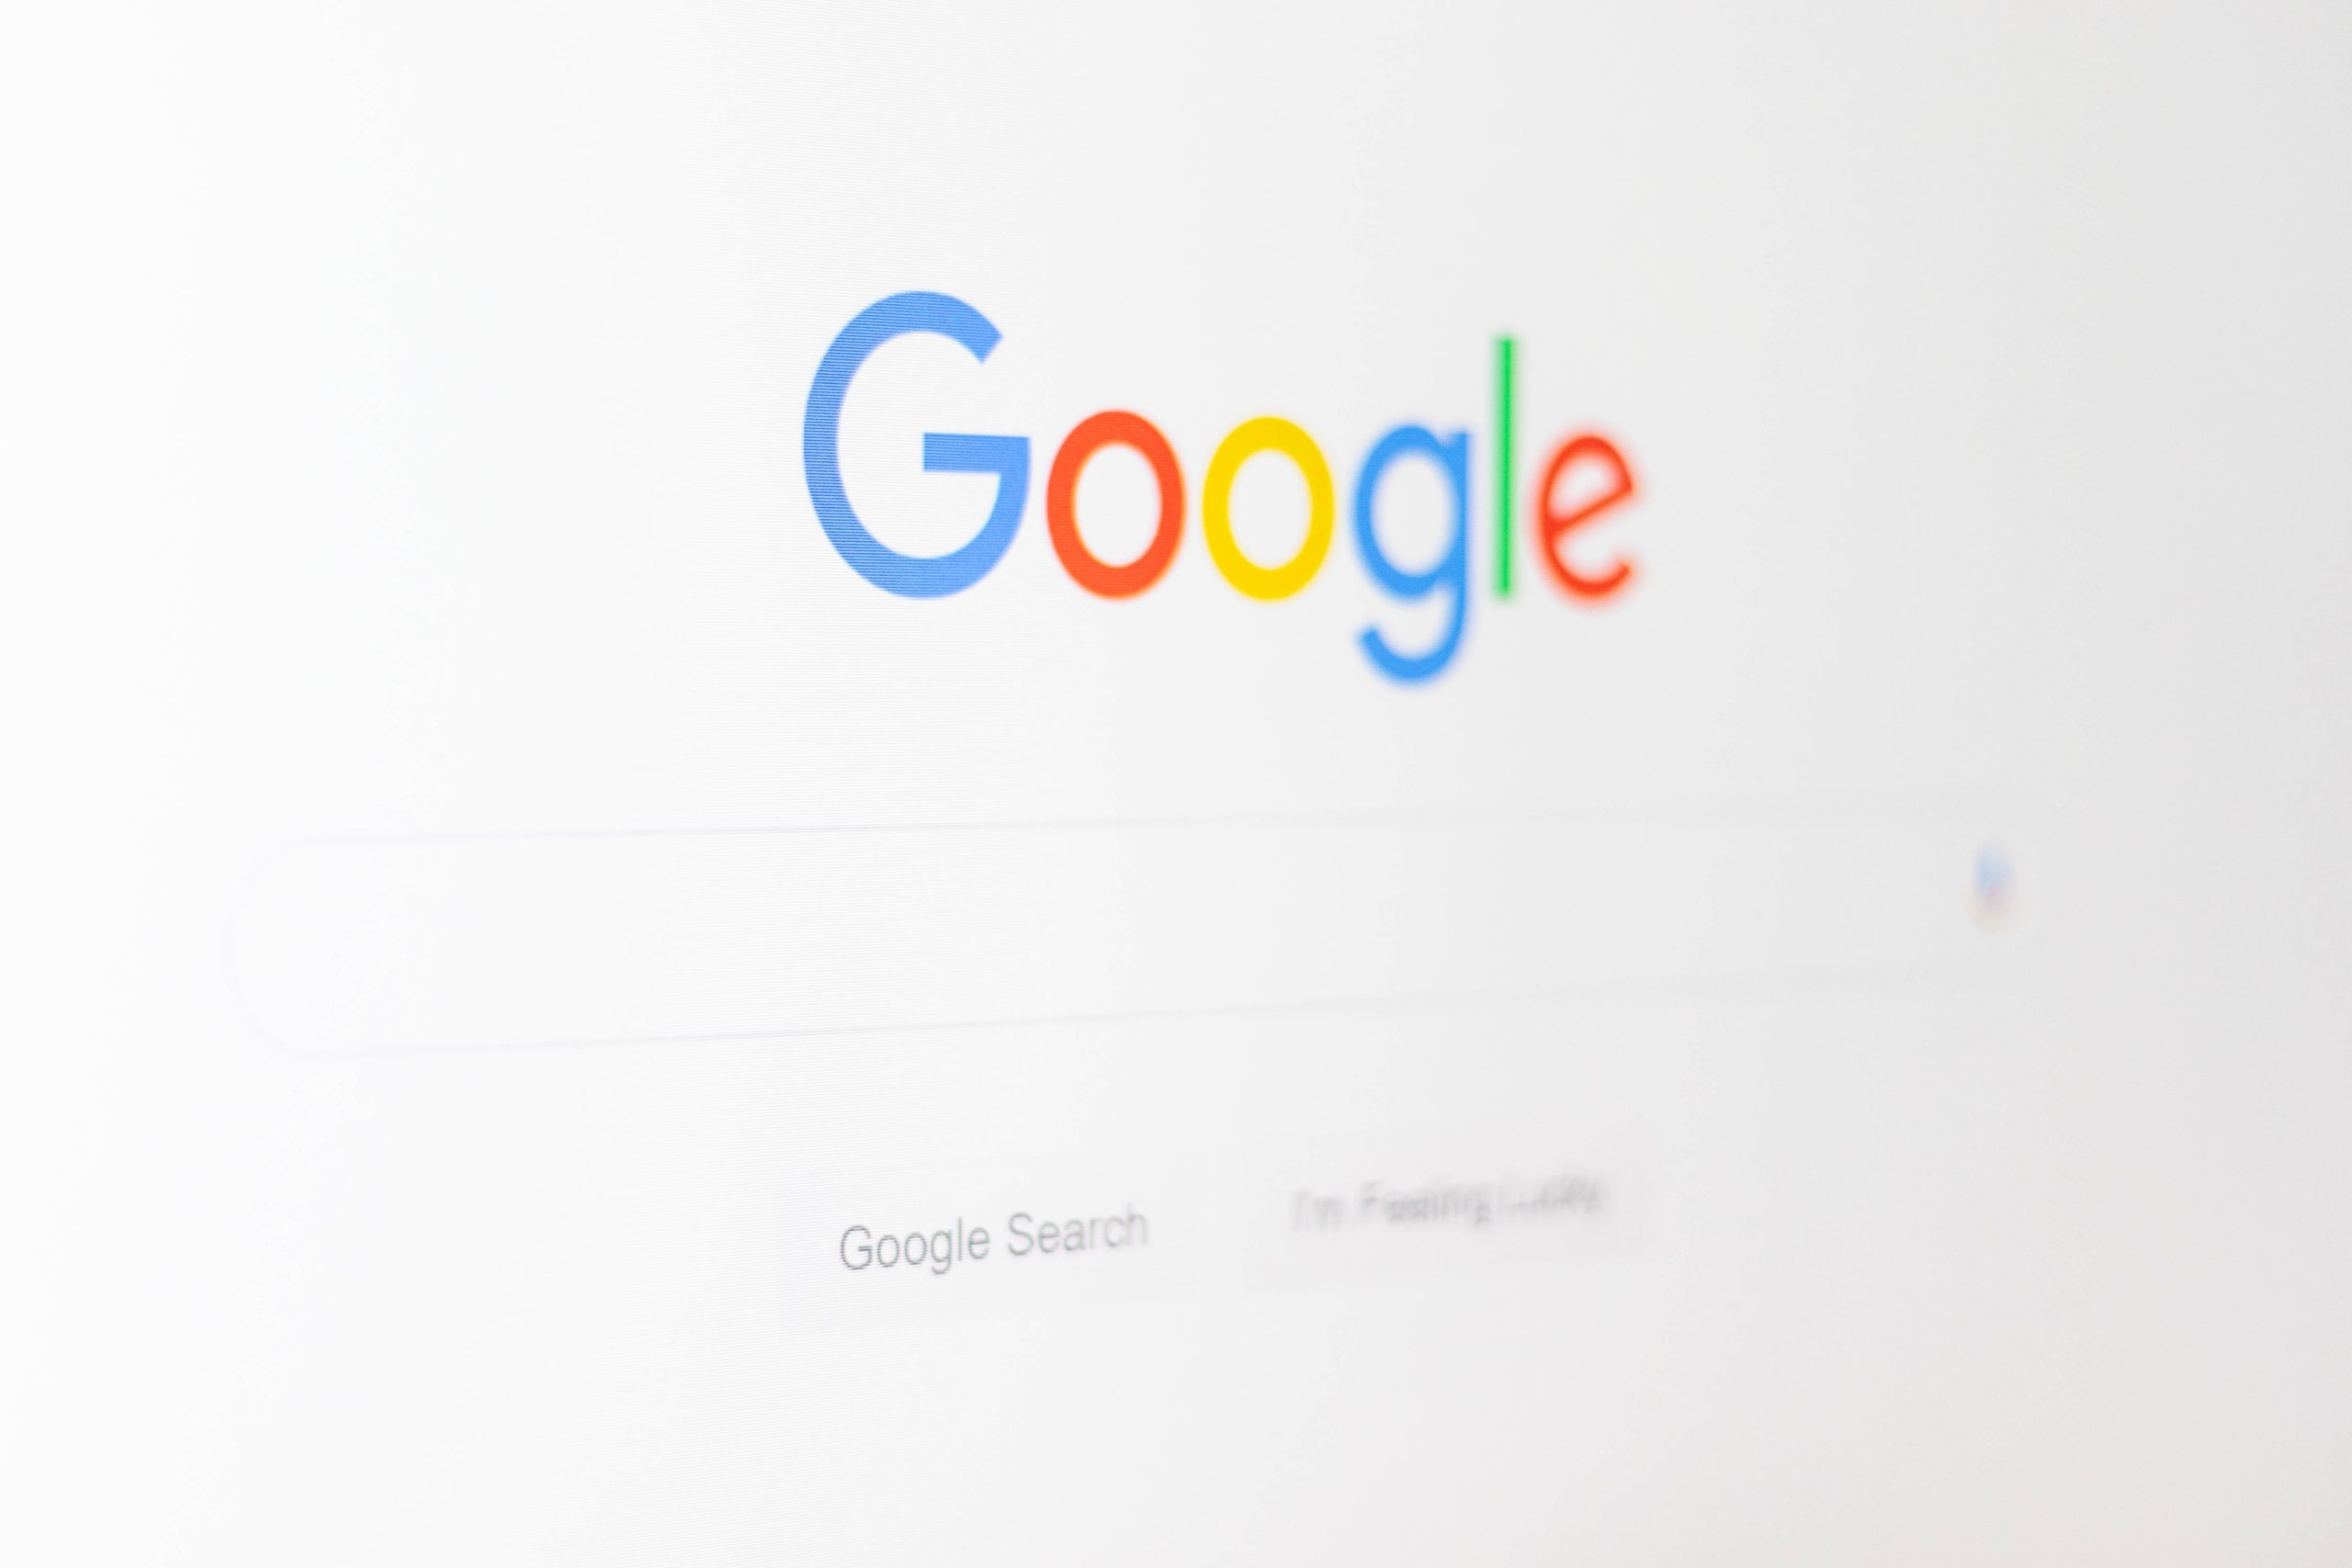 SEO- Search Engine Optimization experts in NY and NJ